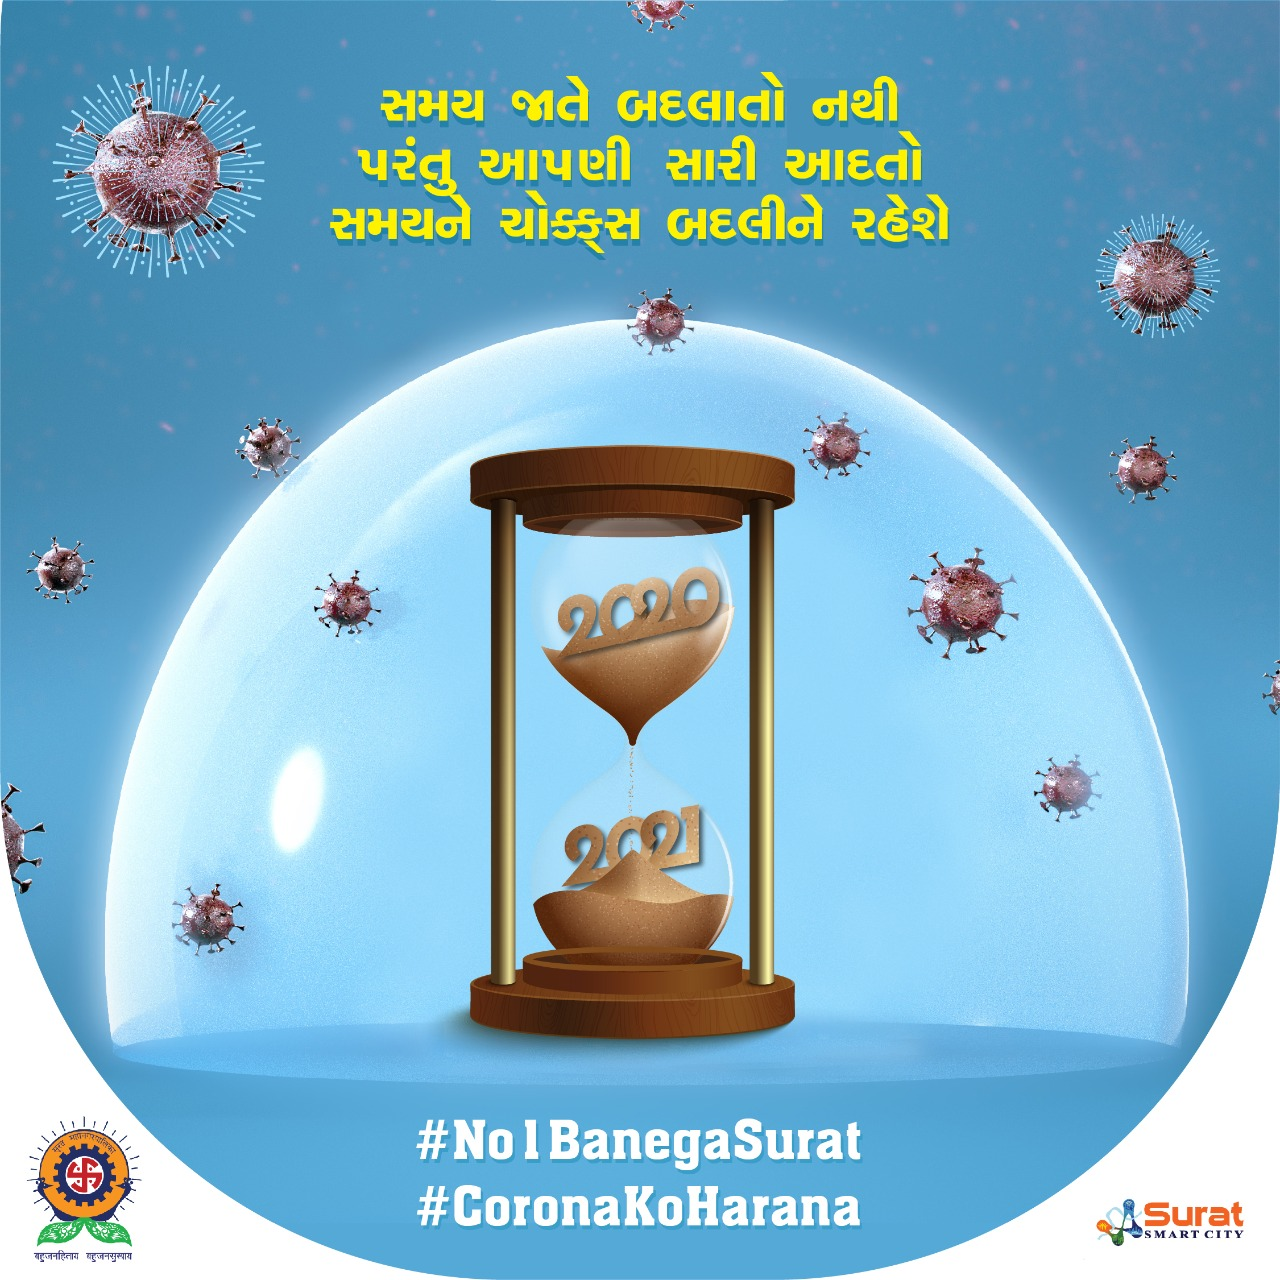 Surat's Resolution2020: No. 1 Banega Surat